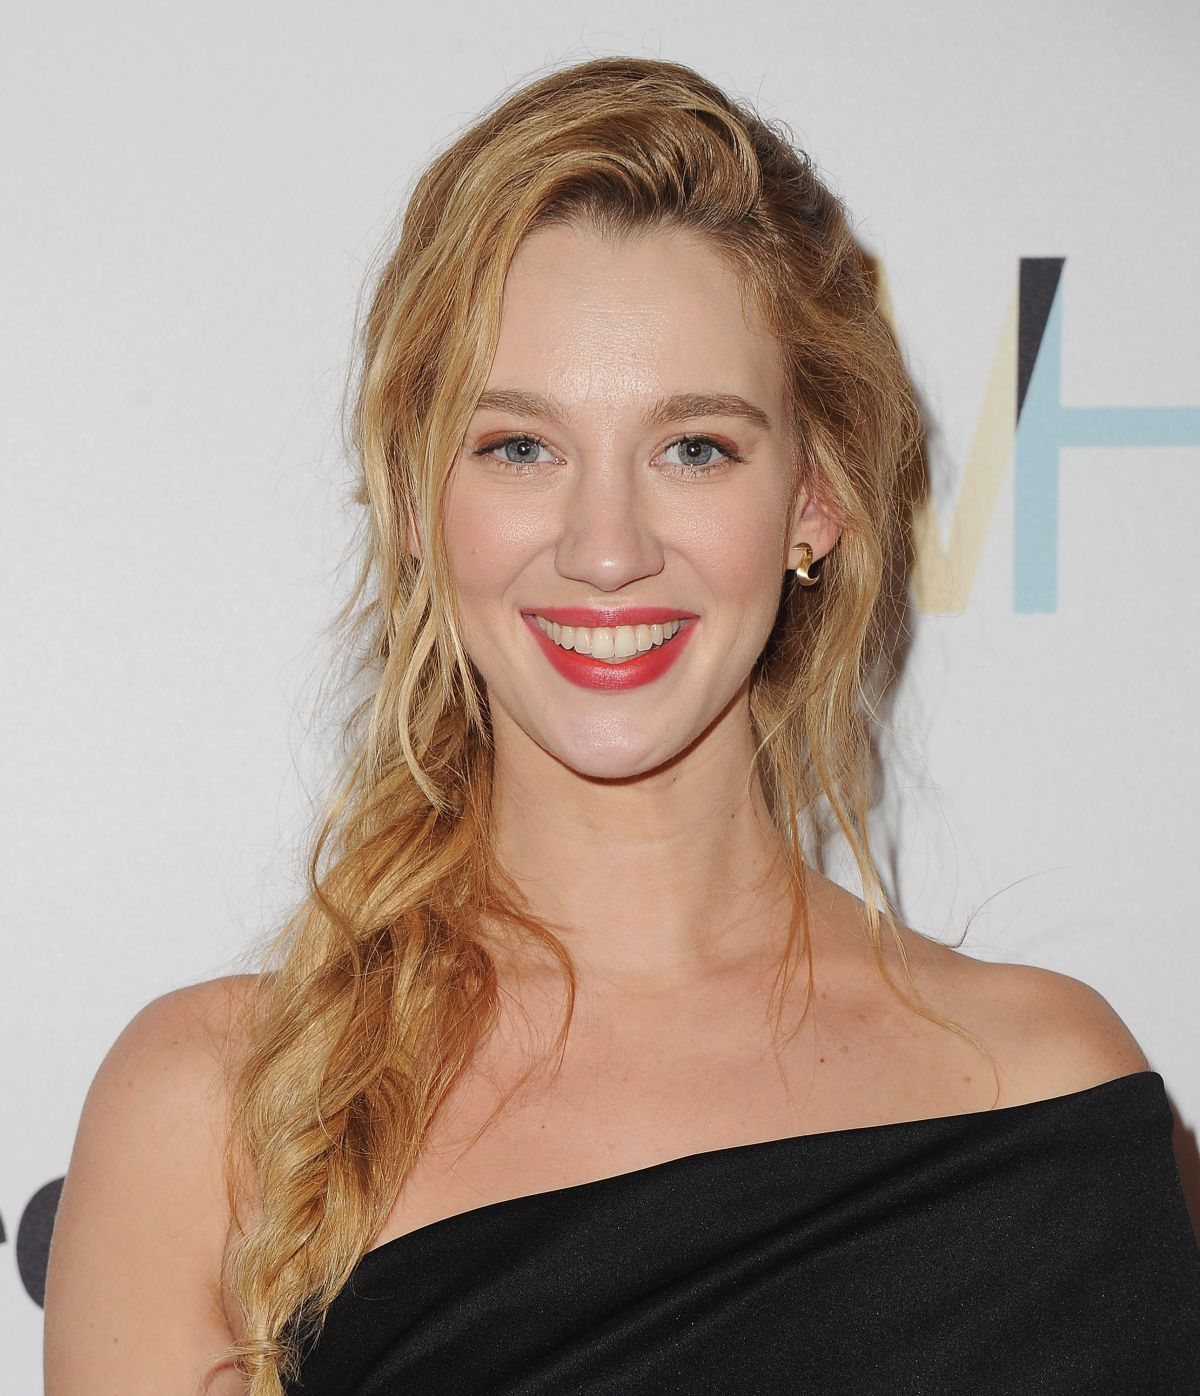 yael grobglas hotyael grobglas gif, yael grobglas height, yael grobglas interview, yael grobglas twin, yael grobglas interview hebrew, yael grobglas reign, yael grobglas instagram, yael grobglas height weight, yael grobglas, yael grobglas boyfriend, yael grobglas languages, yael grobglas jane the virgin, yael grobglas age, yael grobglas hebrew, yael grobglas speaking hebrew, yael grobglas imdb, yael grobglas accent, yael grobglas tumblr, yael grobglas the selection, yael grobglas hot